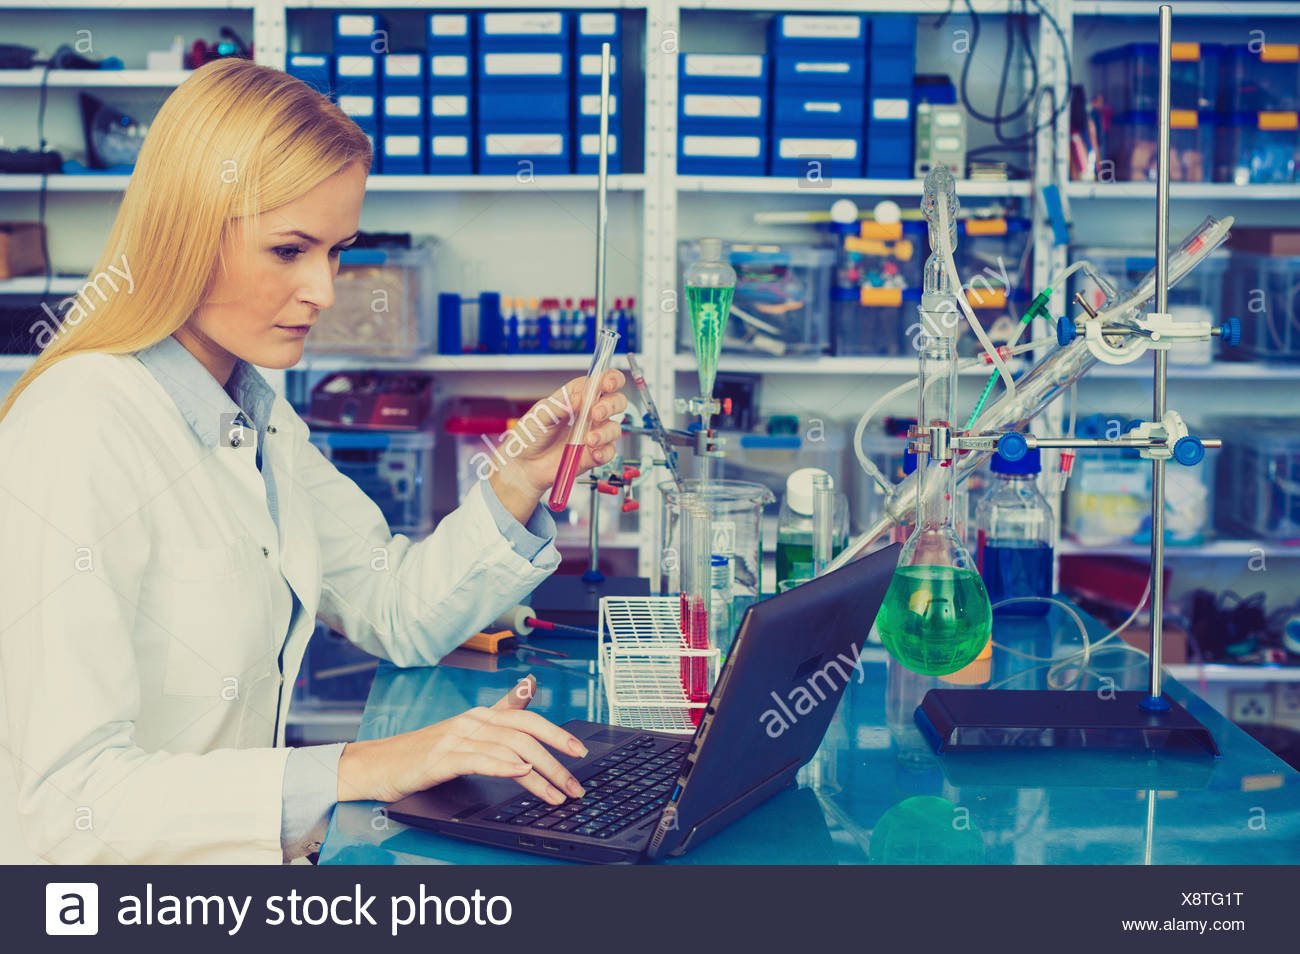 MODEL RELEASED. Female chemist working on a laptop in the laboratory. Stock Photo